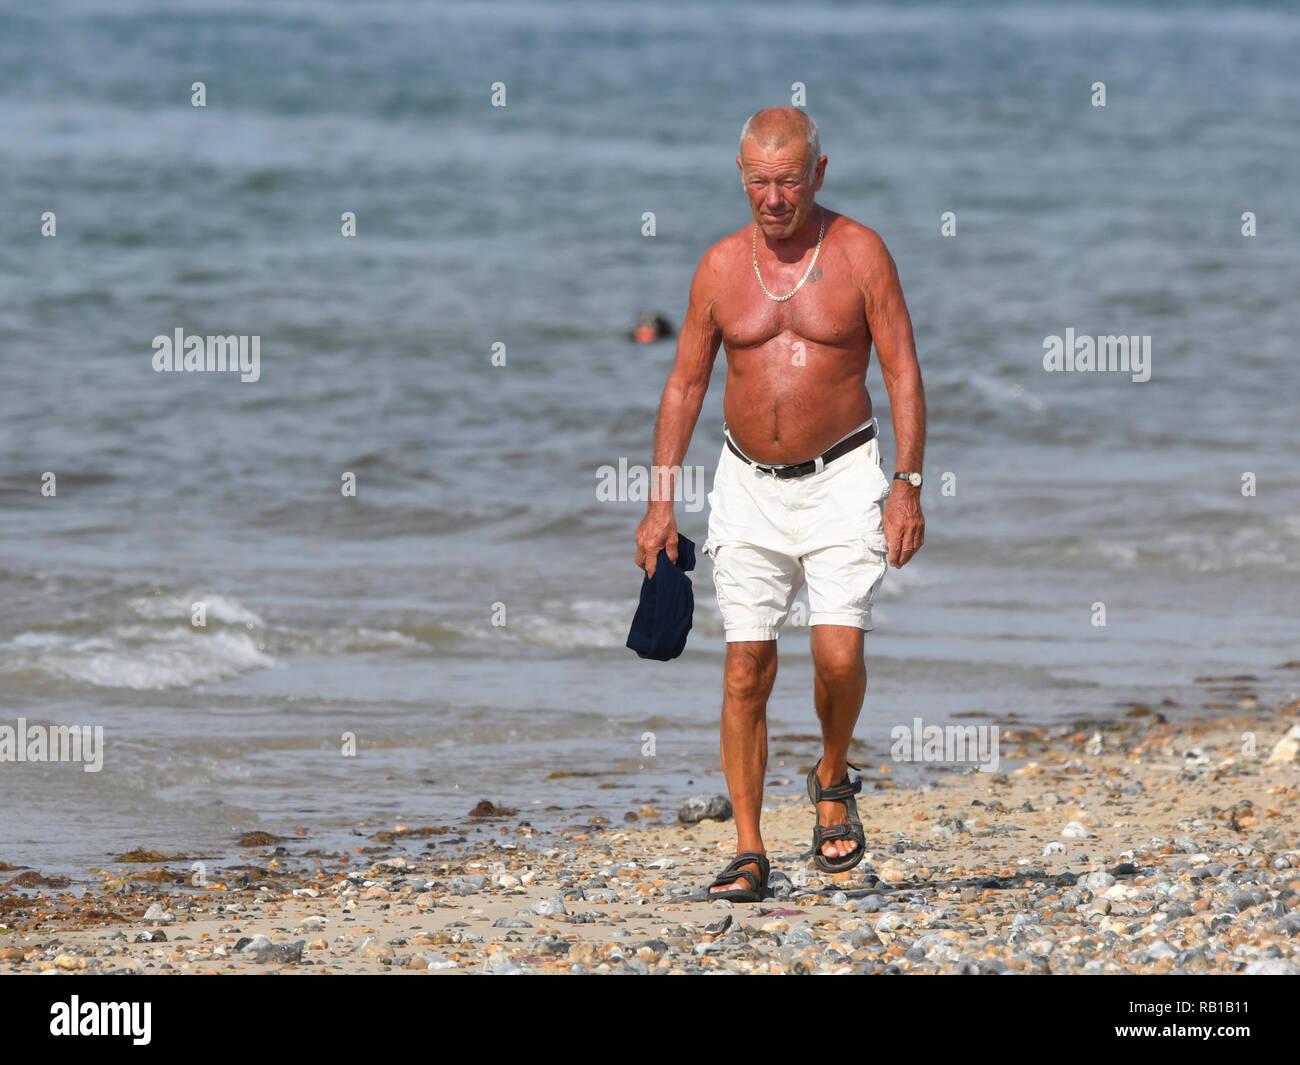 Shirtless man in 60s or 70s walking along the beach by the seafront on a hot Summer's day in the UK. - Stock Image